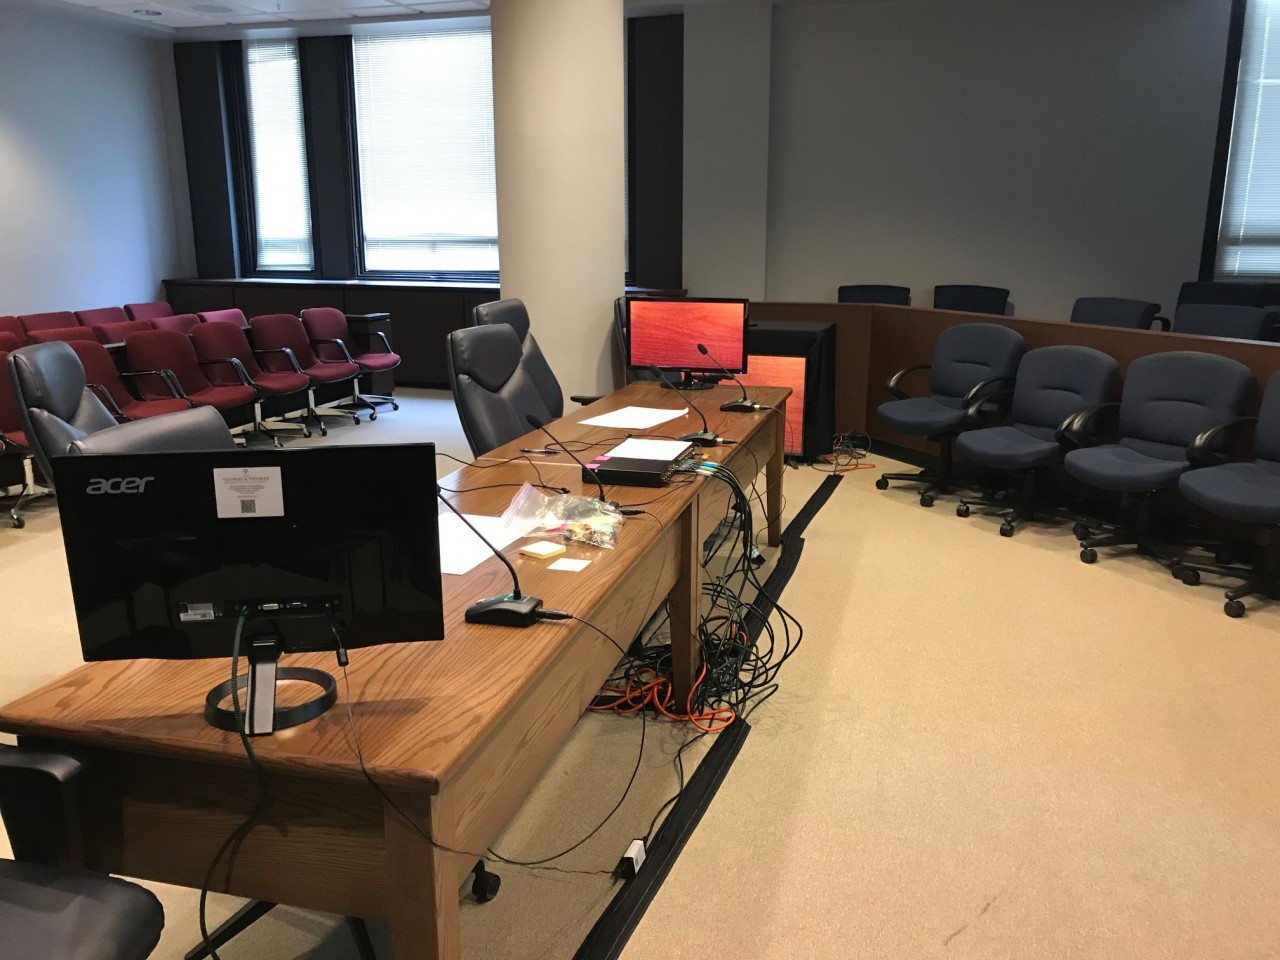 Thomas & Thomas Court Reporters Provides A/V Equipment Rental for Trial at Douglas County Courthouse